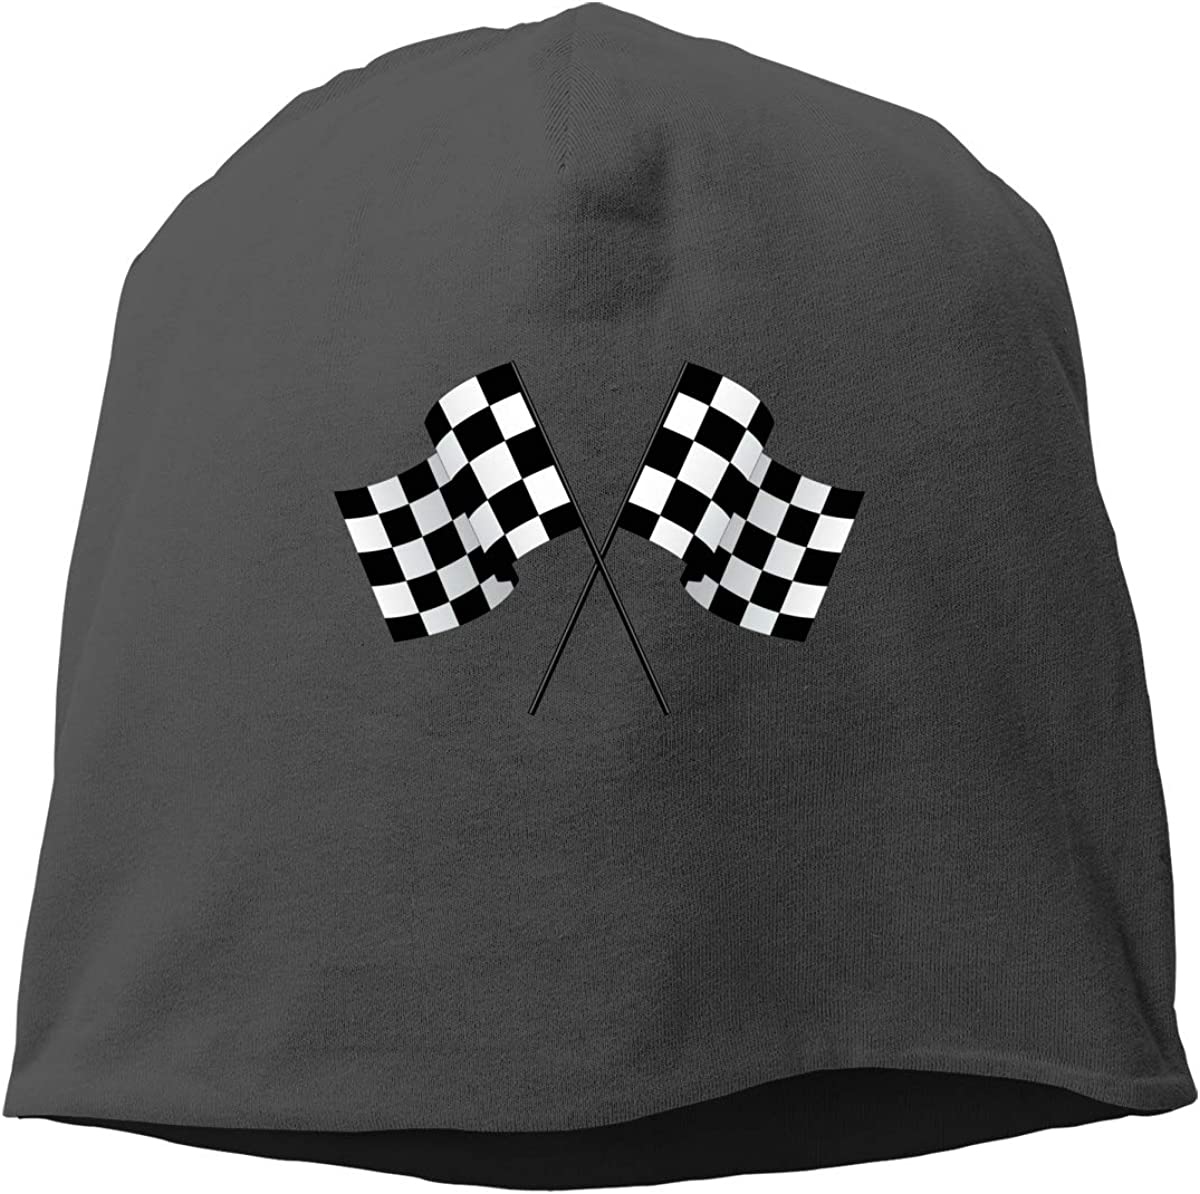 Checkered Flags Race Car Flag Skull Cap Helmet Liner Beanie Cap for Men Hip Hop Hedging Head Hat